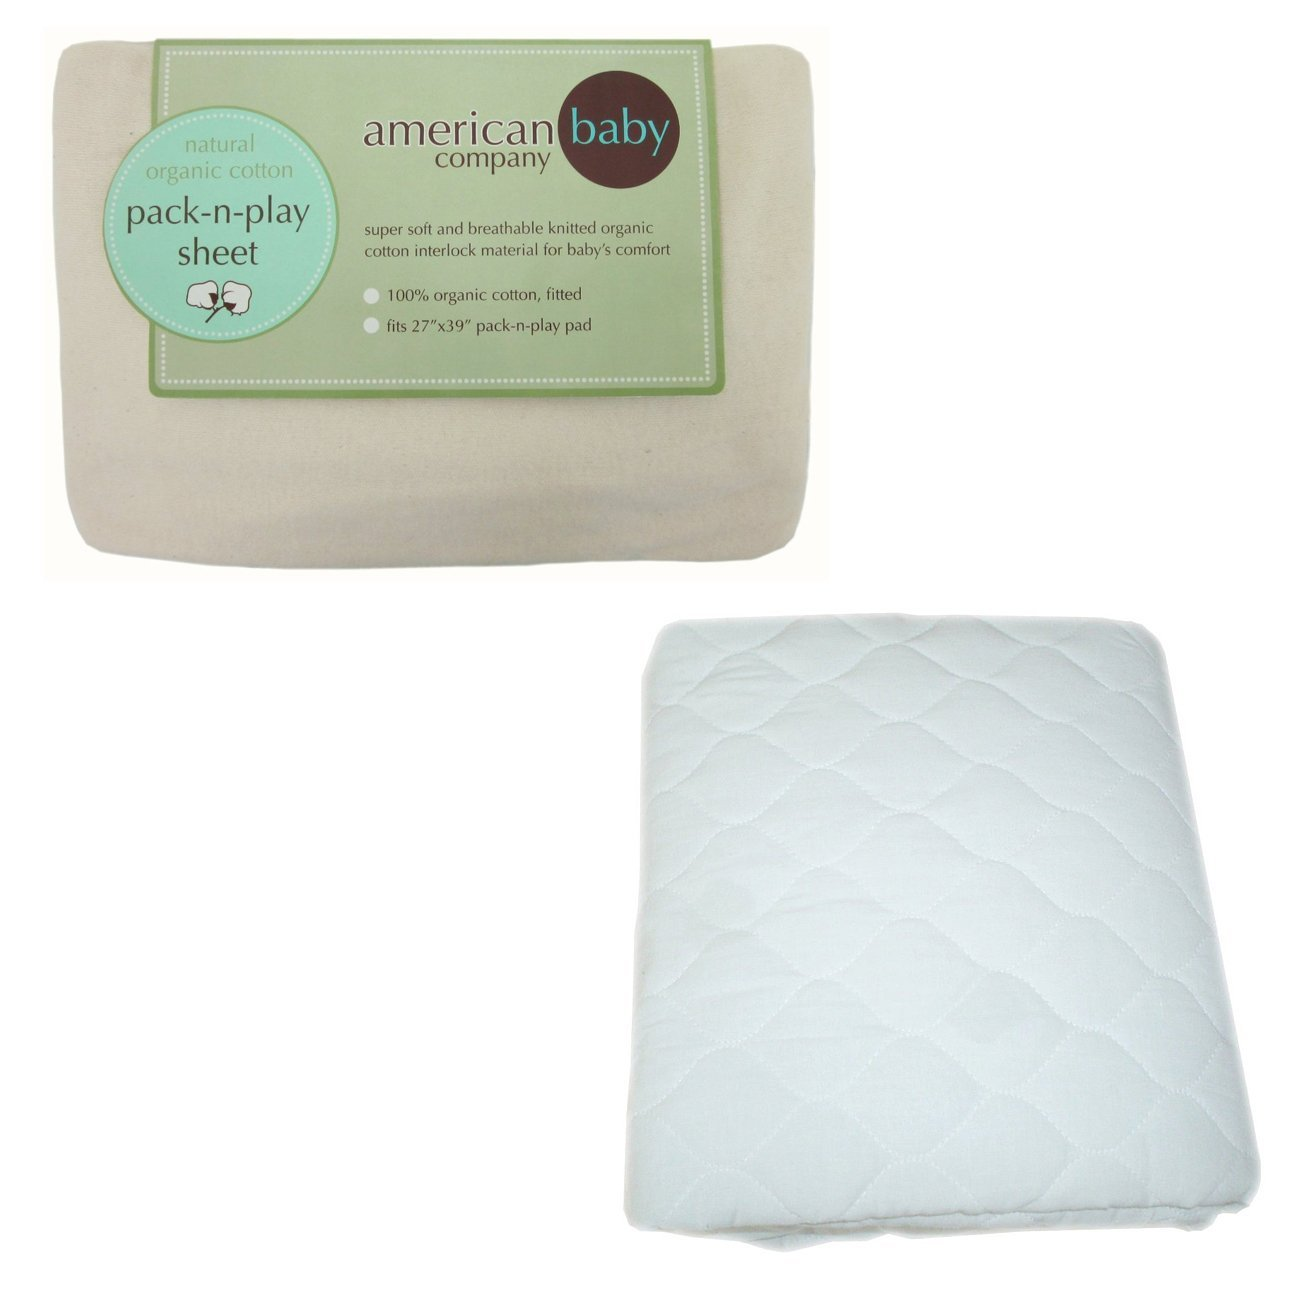 American Baby Company Organic Cotton Knitted Pack N Play Sheet with Waterproof Quilted Portable Crib Mattress Pad